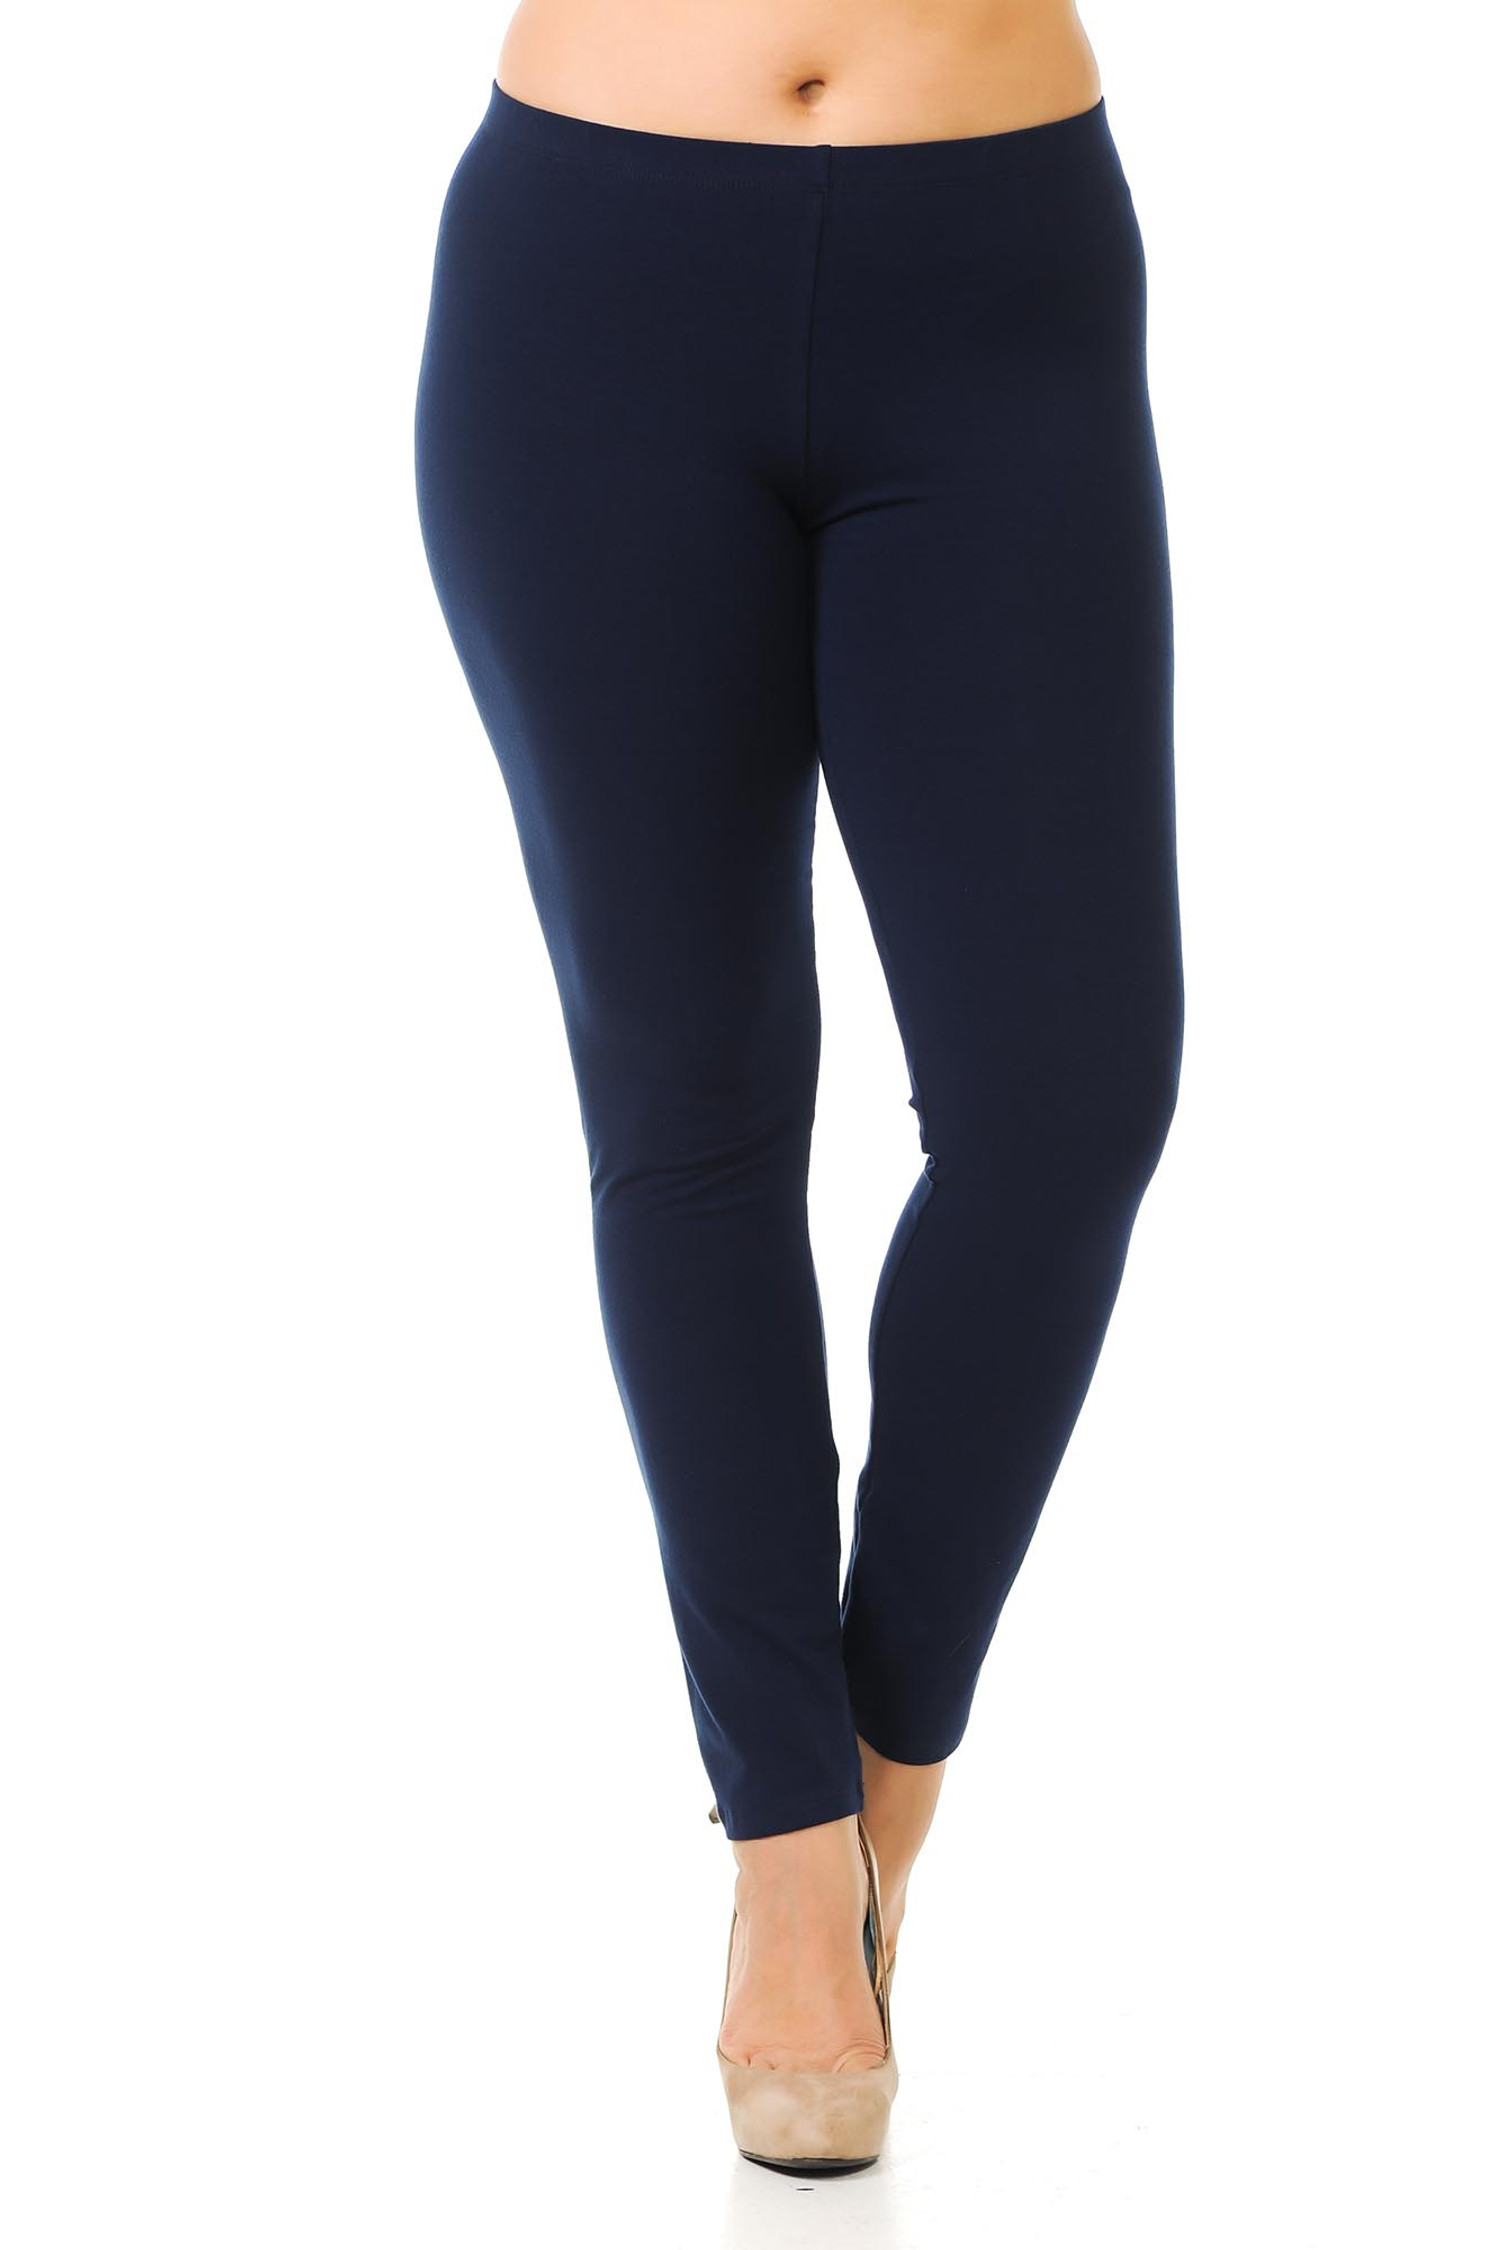 Front view of full length navy made in the USA cotton leggings.